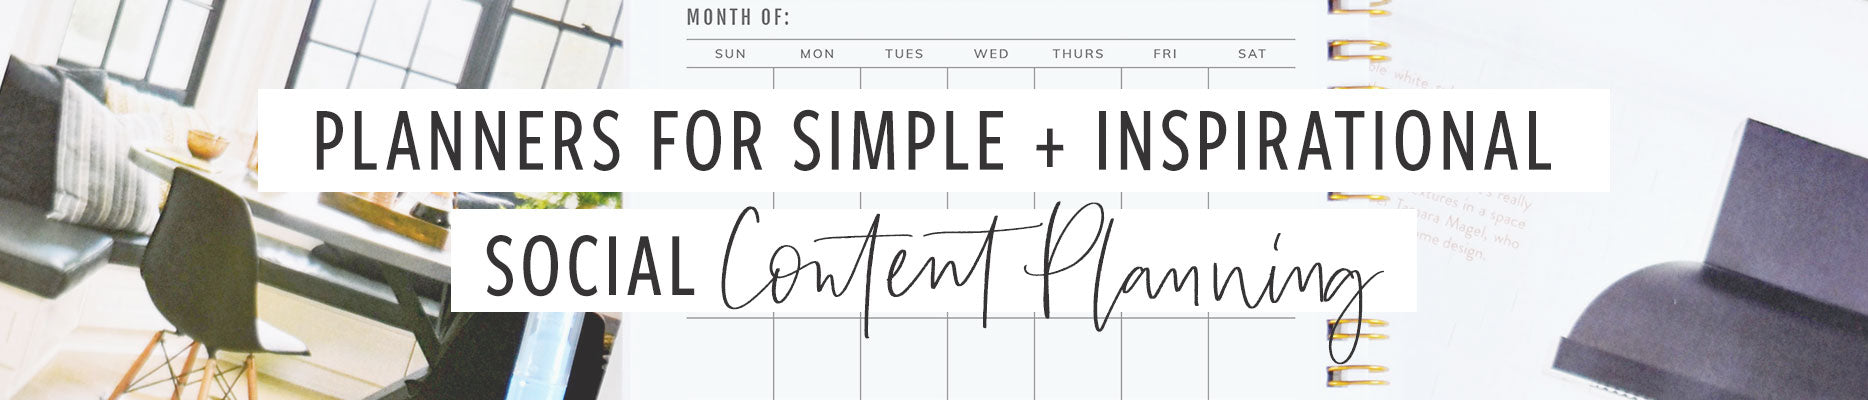 Workspacery Content Planners